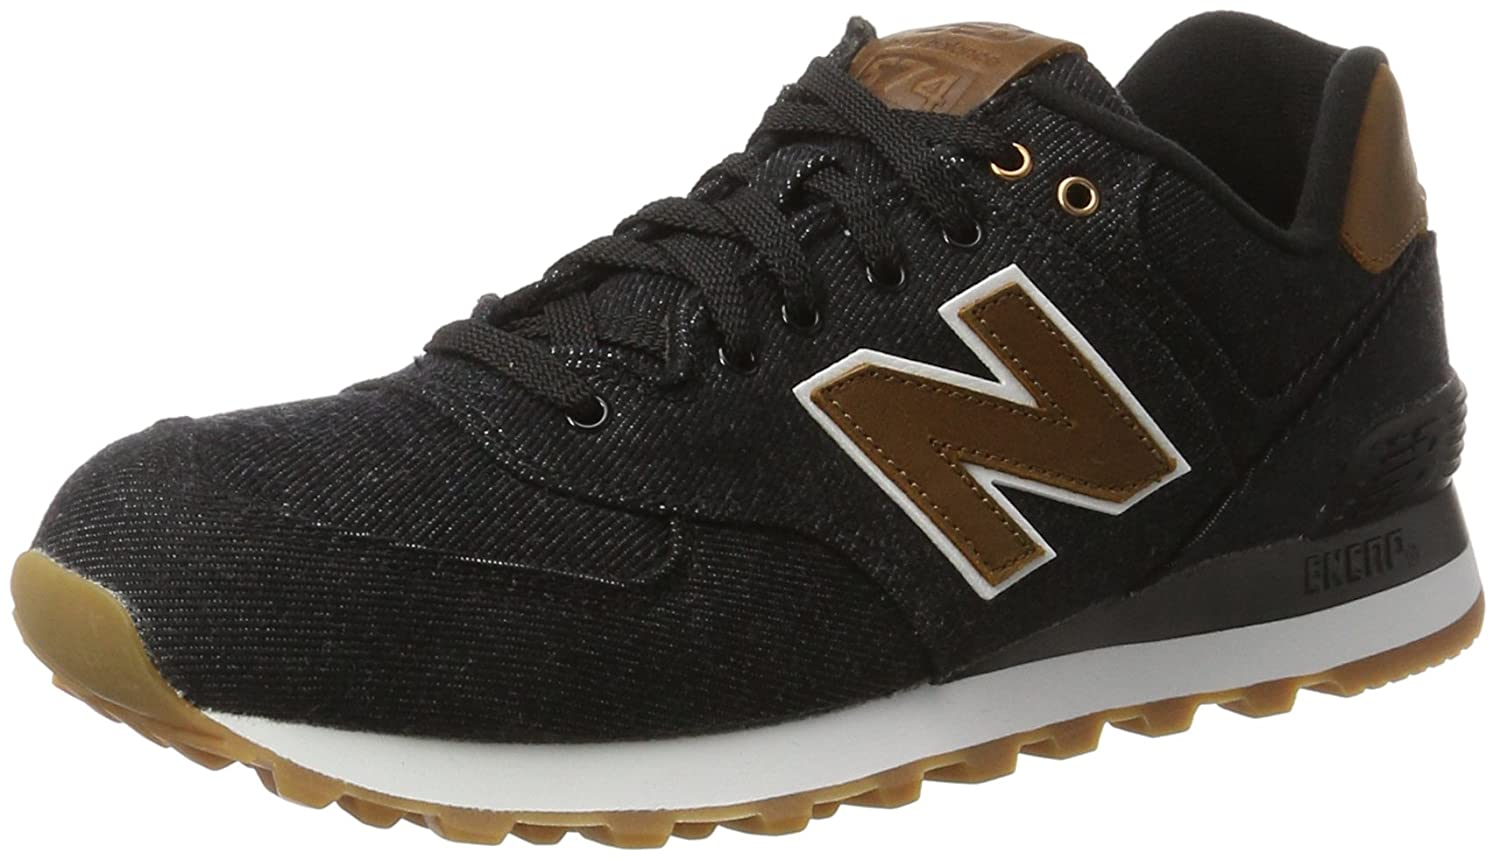 innovative design 4e21a b06f6 New Balance Men's ML574 Canvas Pack Sneaker